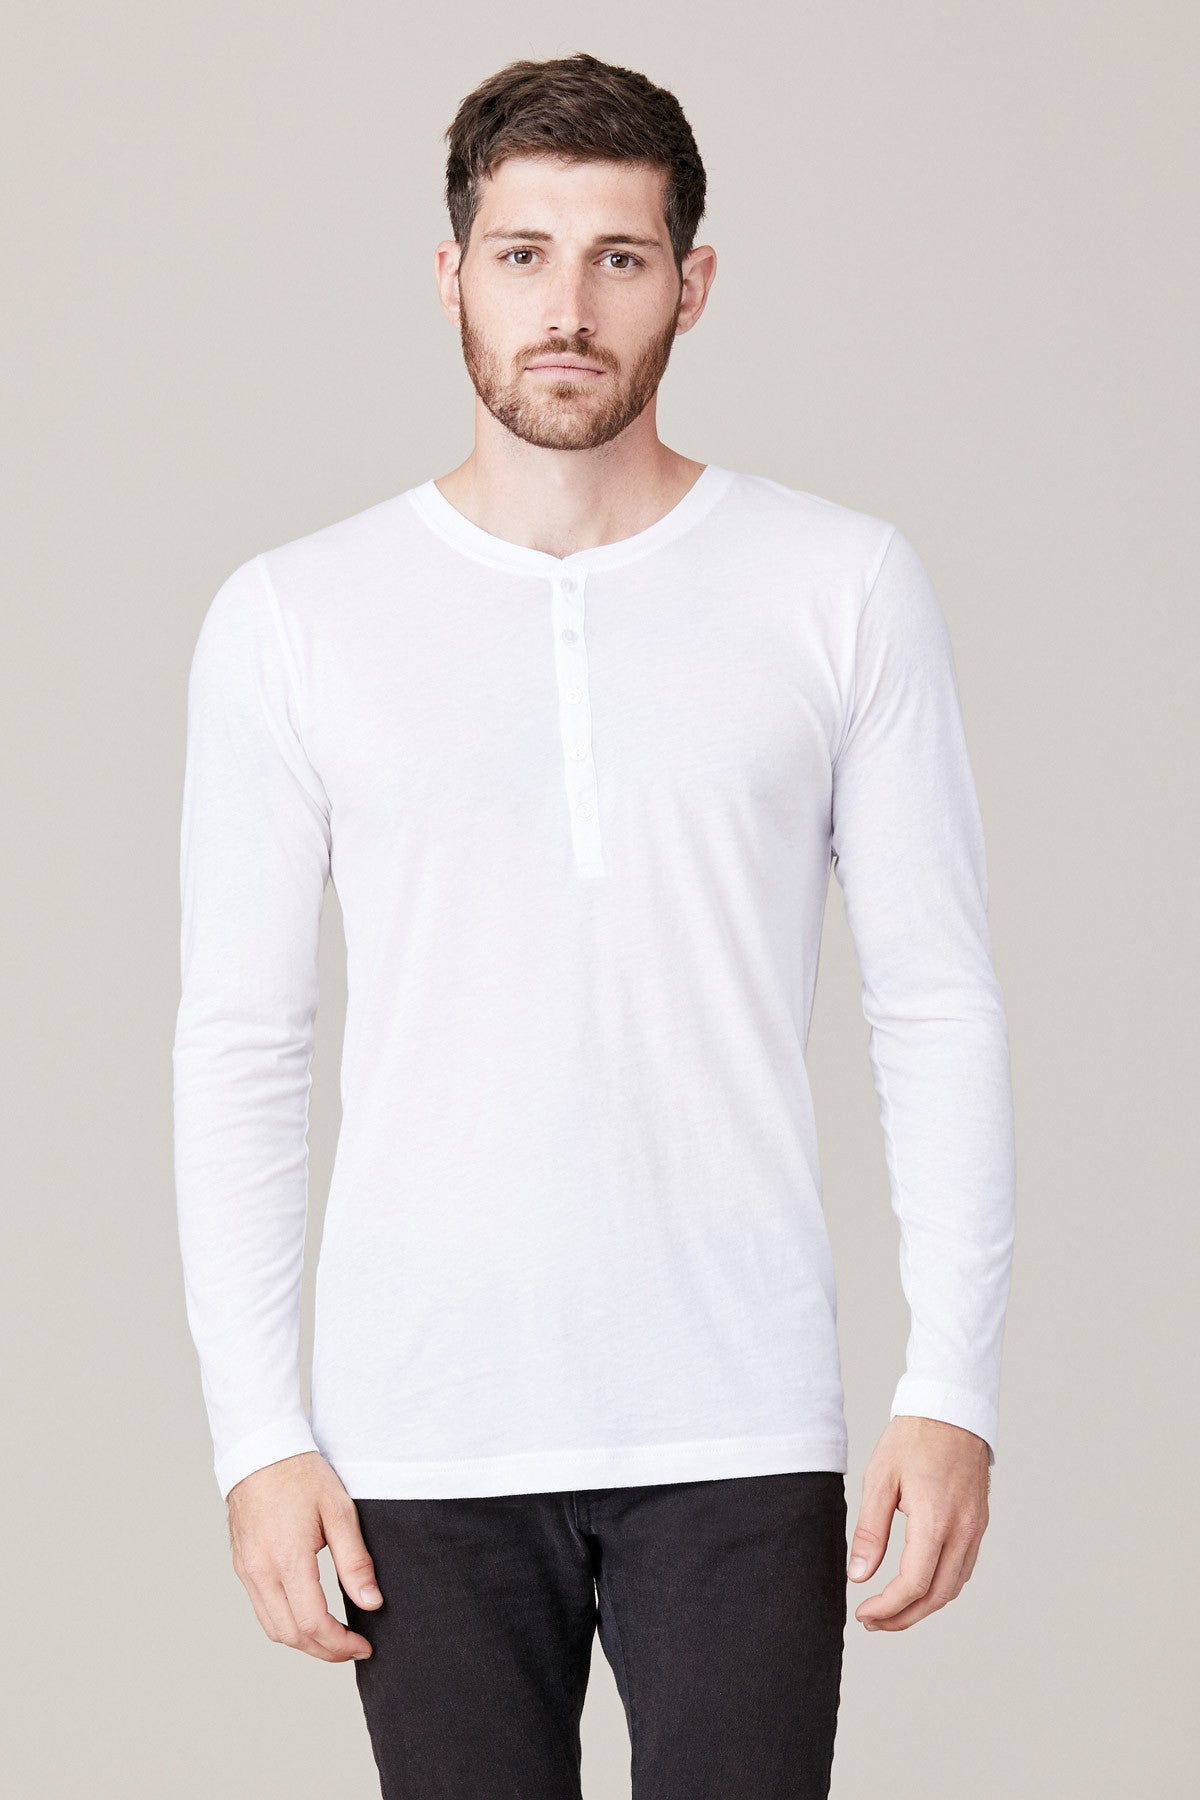 Shop online for Men's Henley Long Sleeve & T-Shirts at travabjmsh.ga Find cotton, linen & knit blends. Free Shipping. Free Returns. All the time.